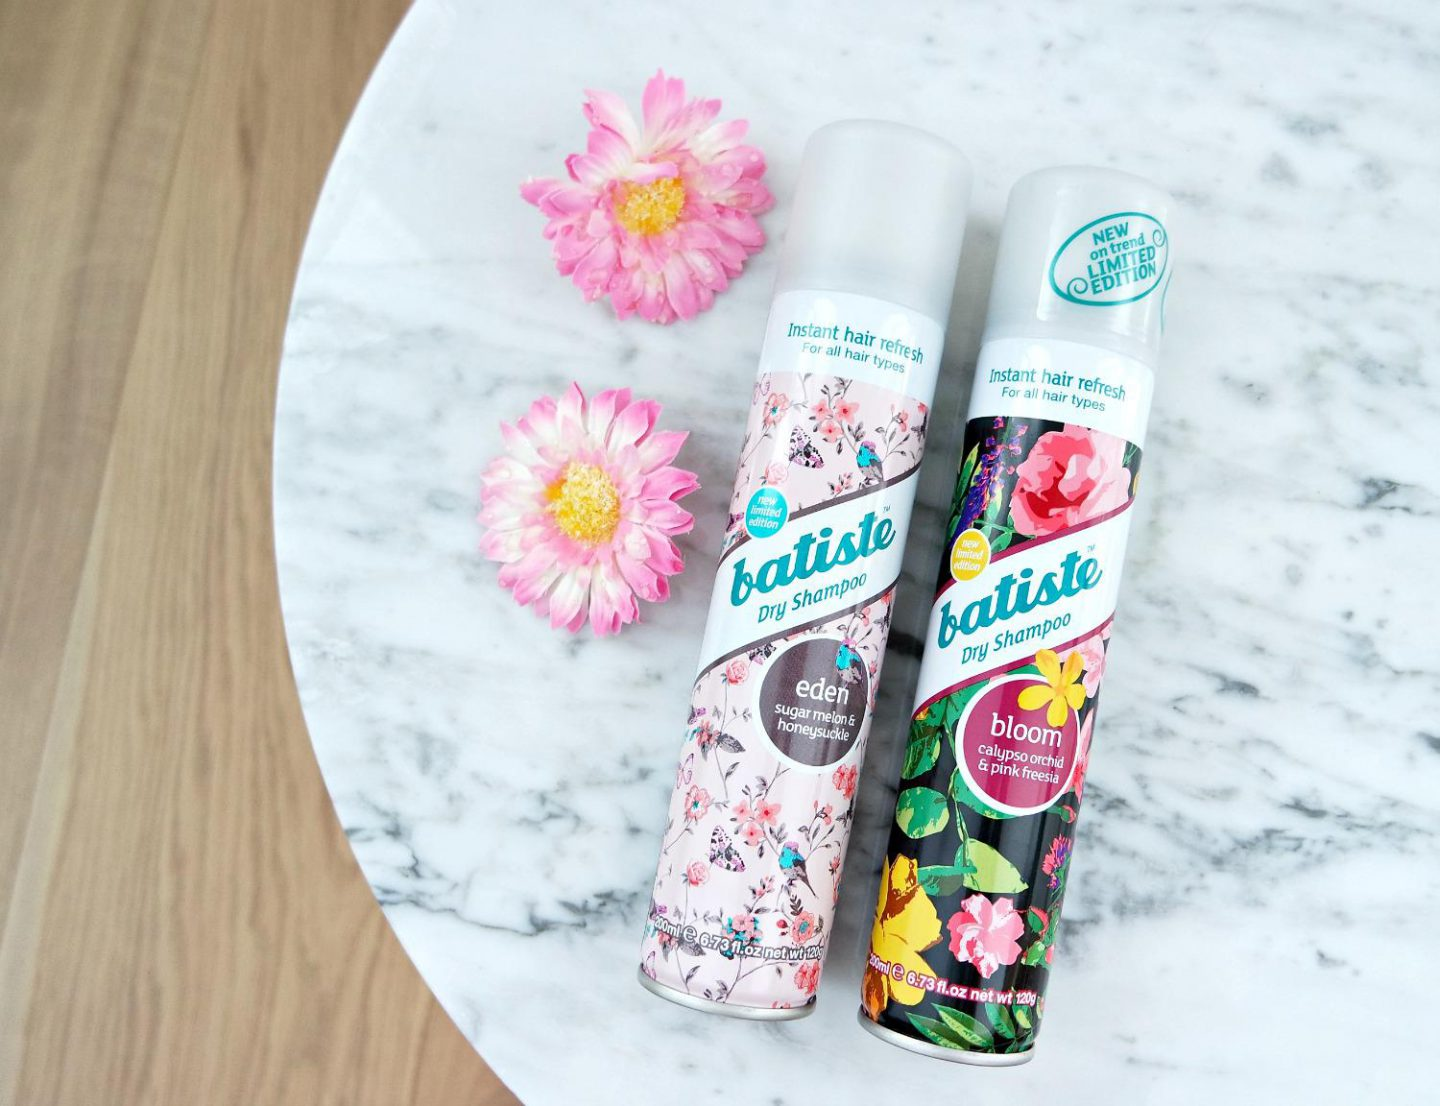 Mijn haarritueel & Review Batiste droogshampoo Limited editions Eden en Bloom